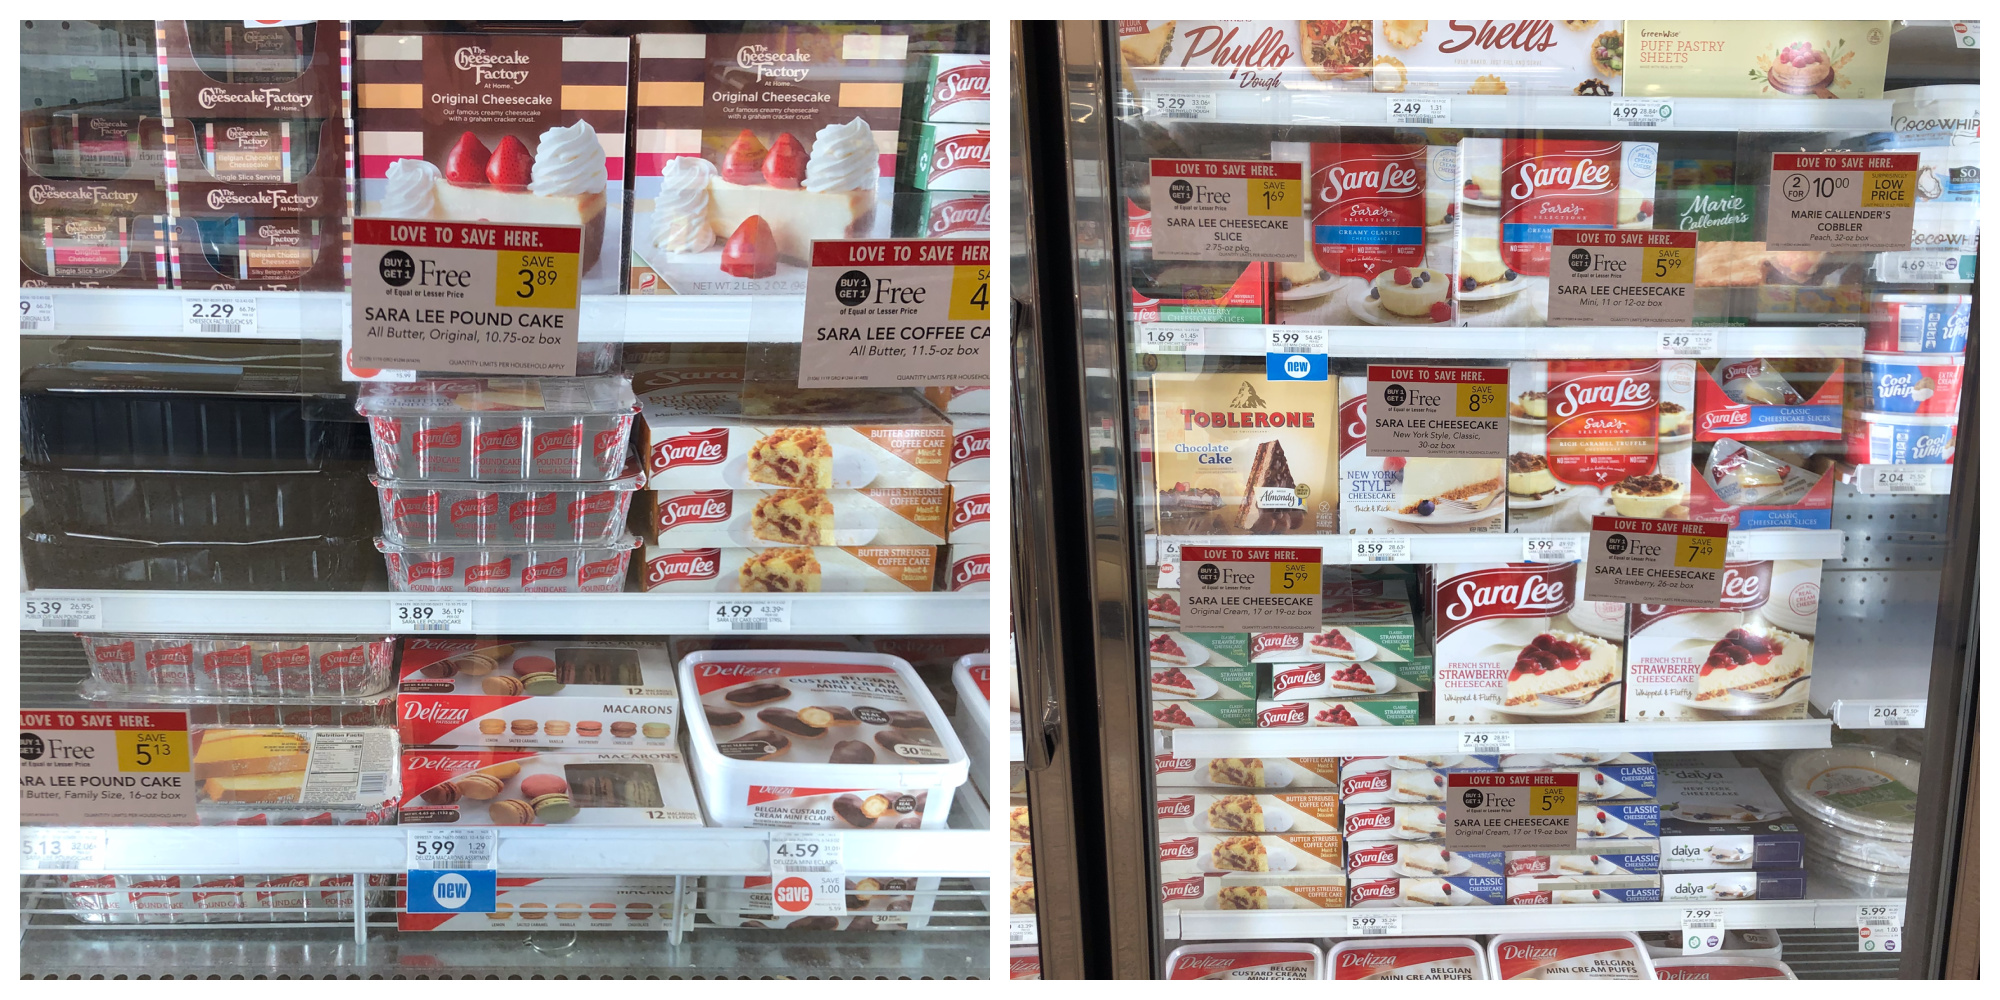 Sara Lee Pound Cake As Low As $1.40 At Publix on I Heart Publix 1